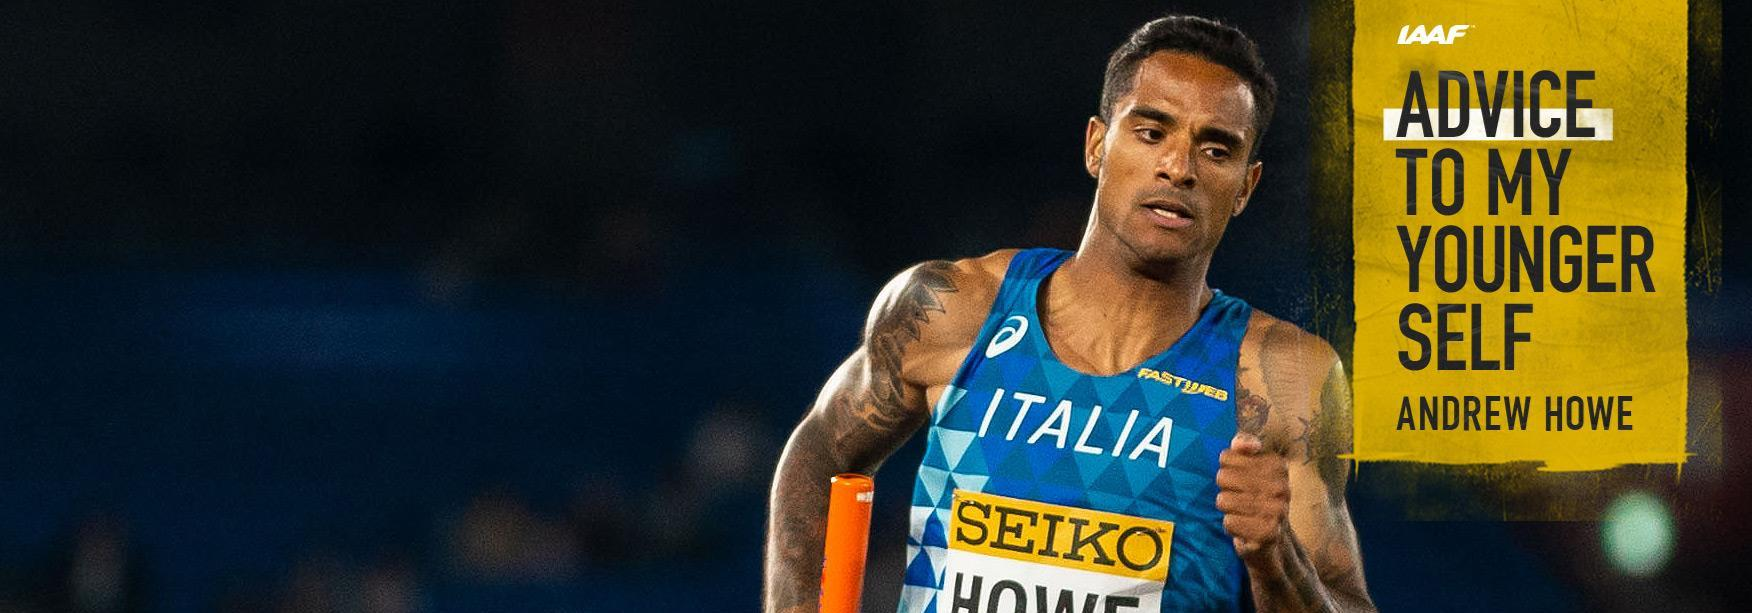 Italy's Andrew Howe in action at the IAAF World Relays Yokohama 2019 (Dan Vernon)